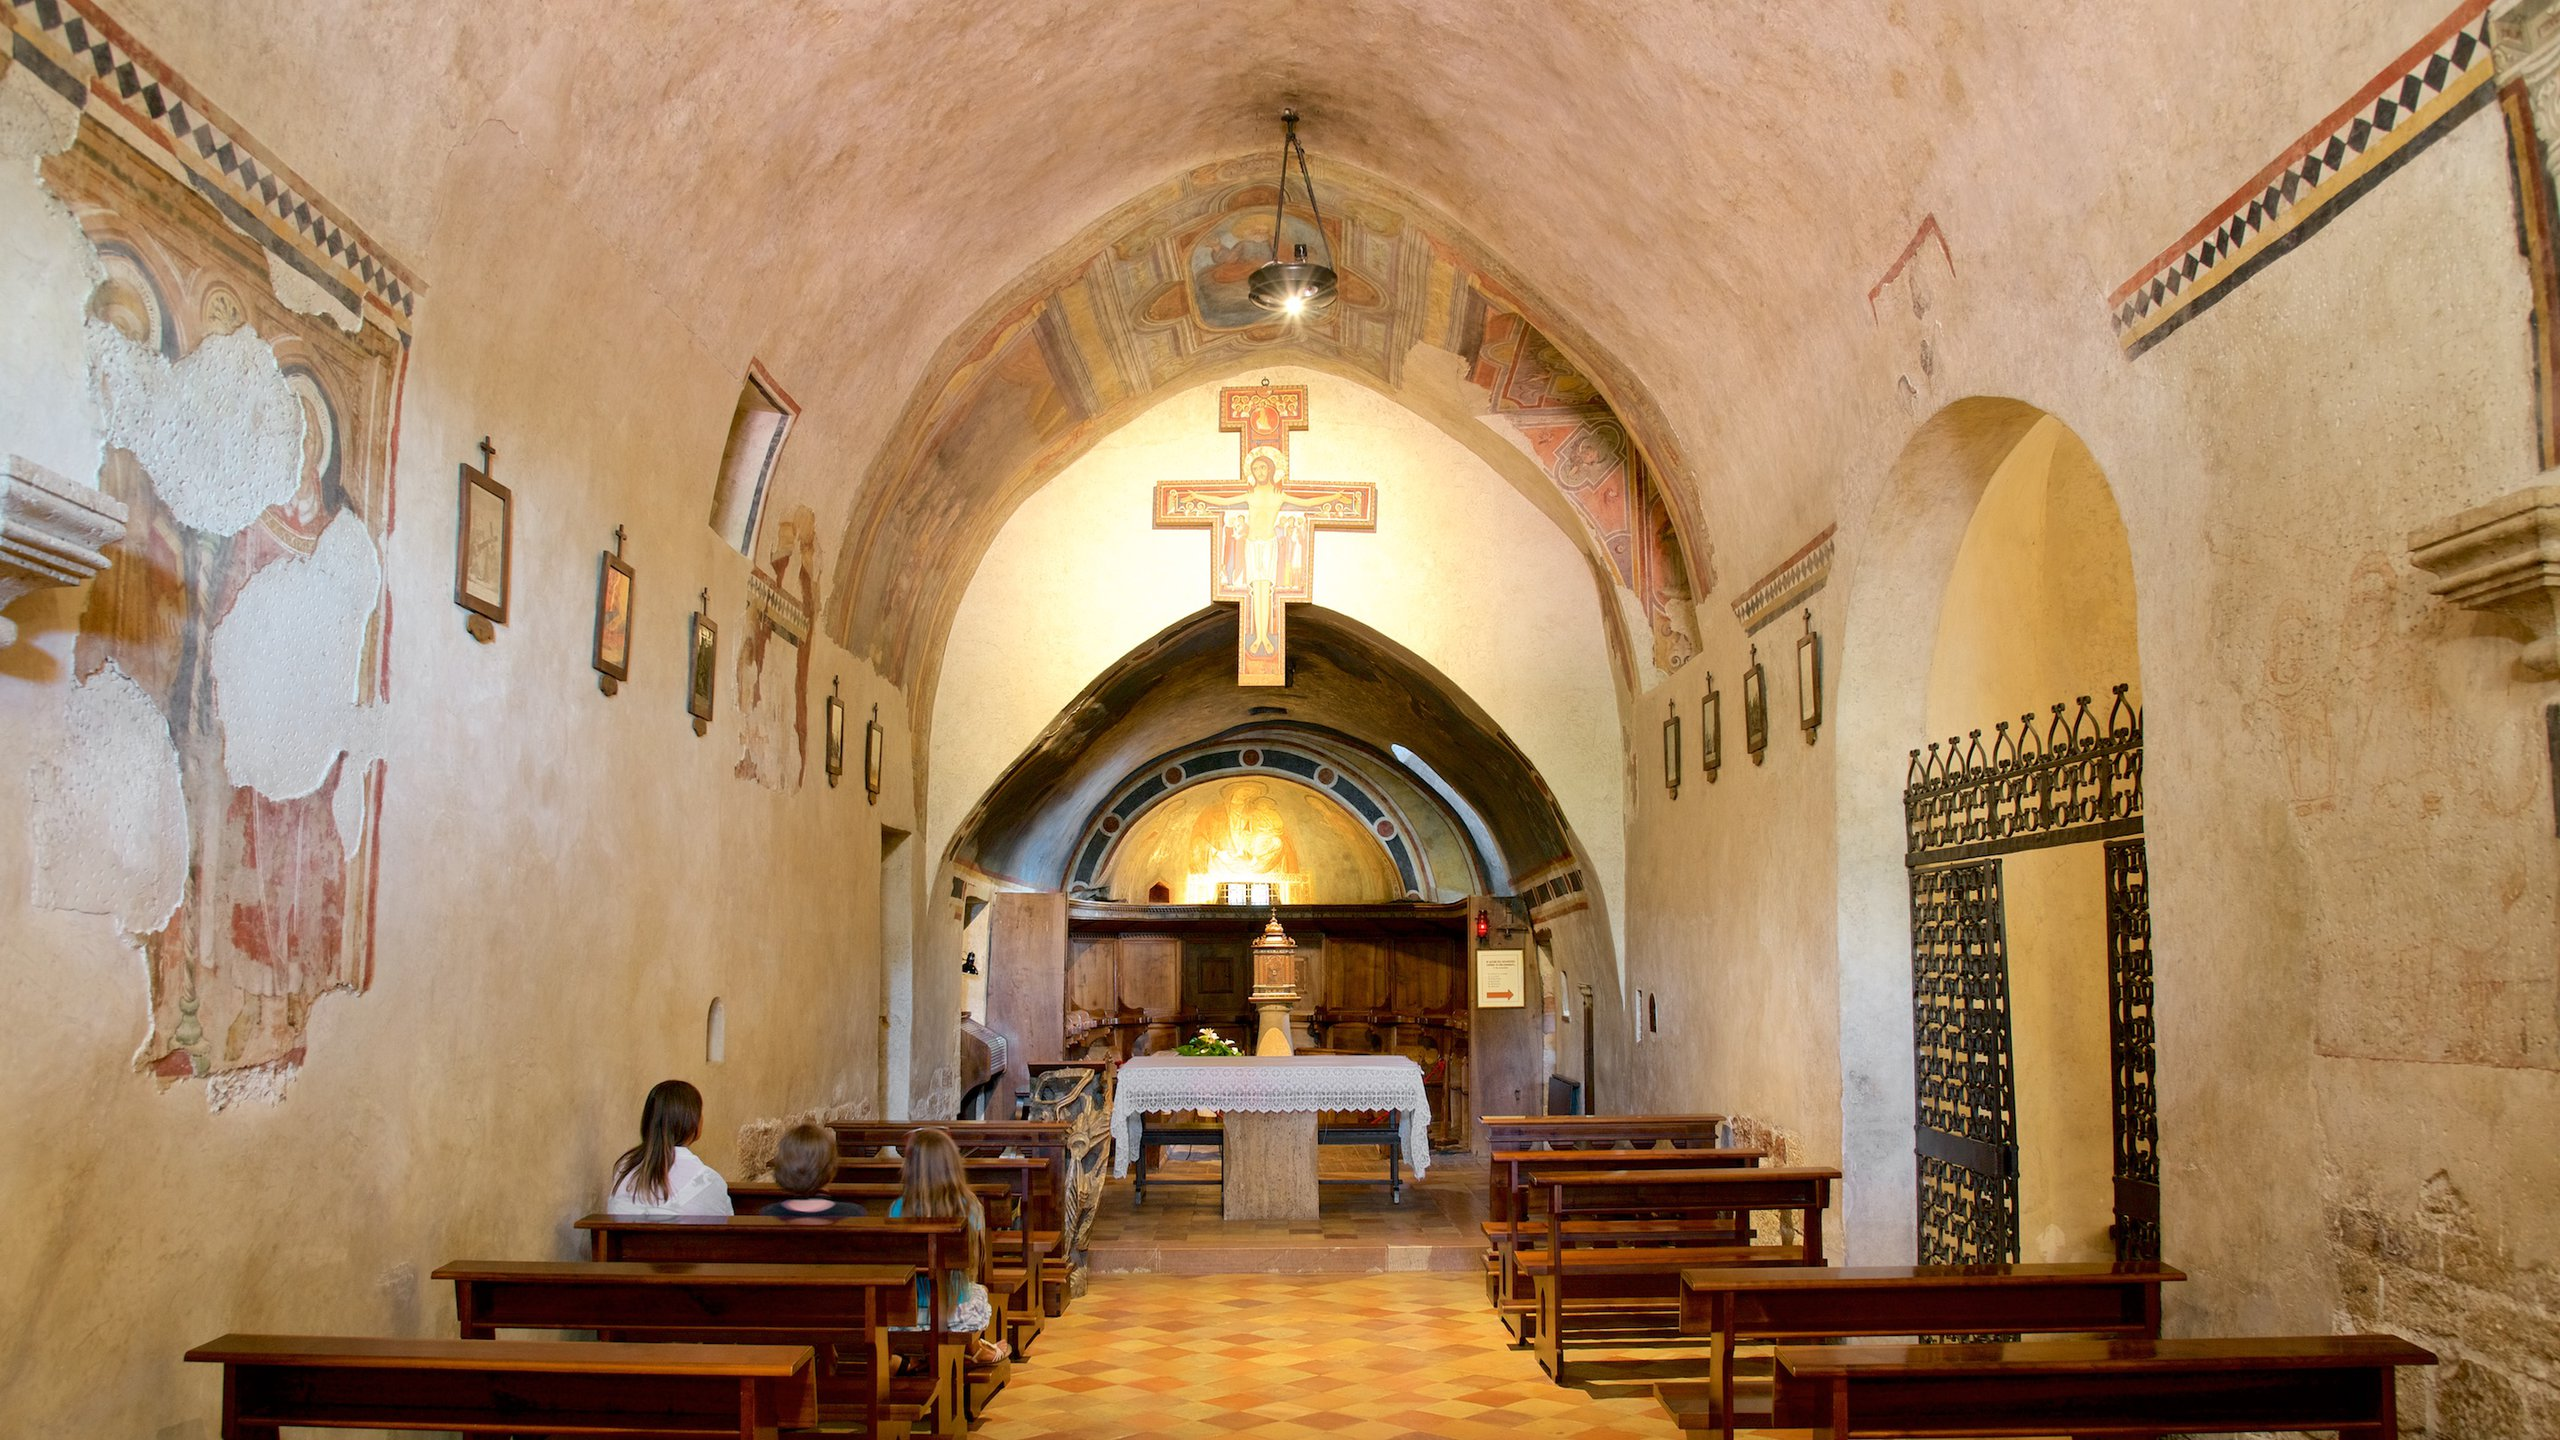 San Damiano showing interior views, religious elements and a church or cathedral